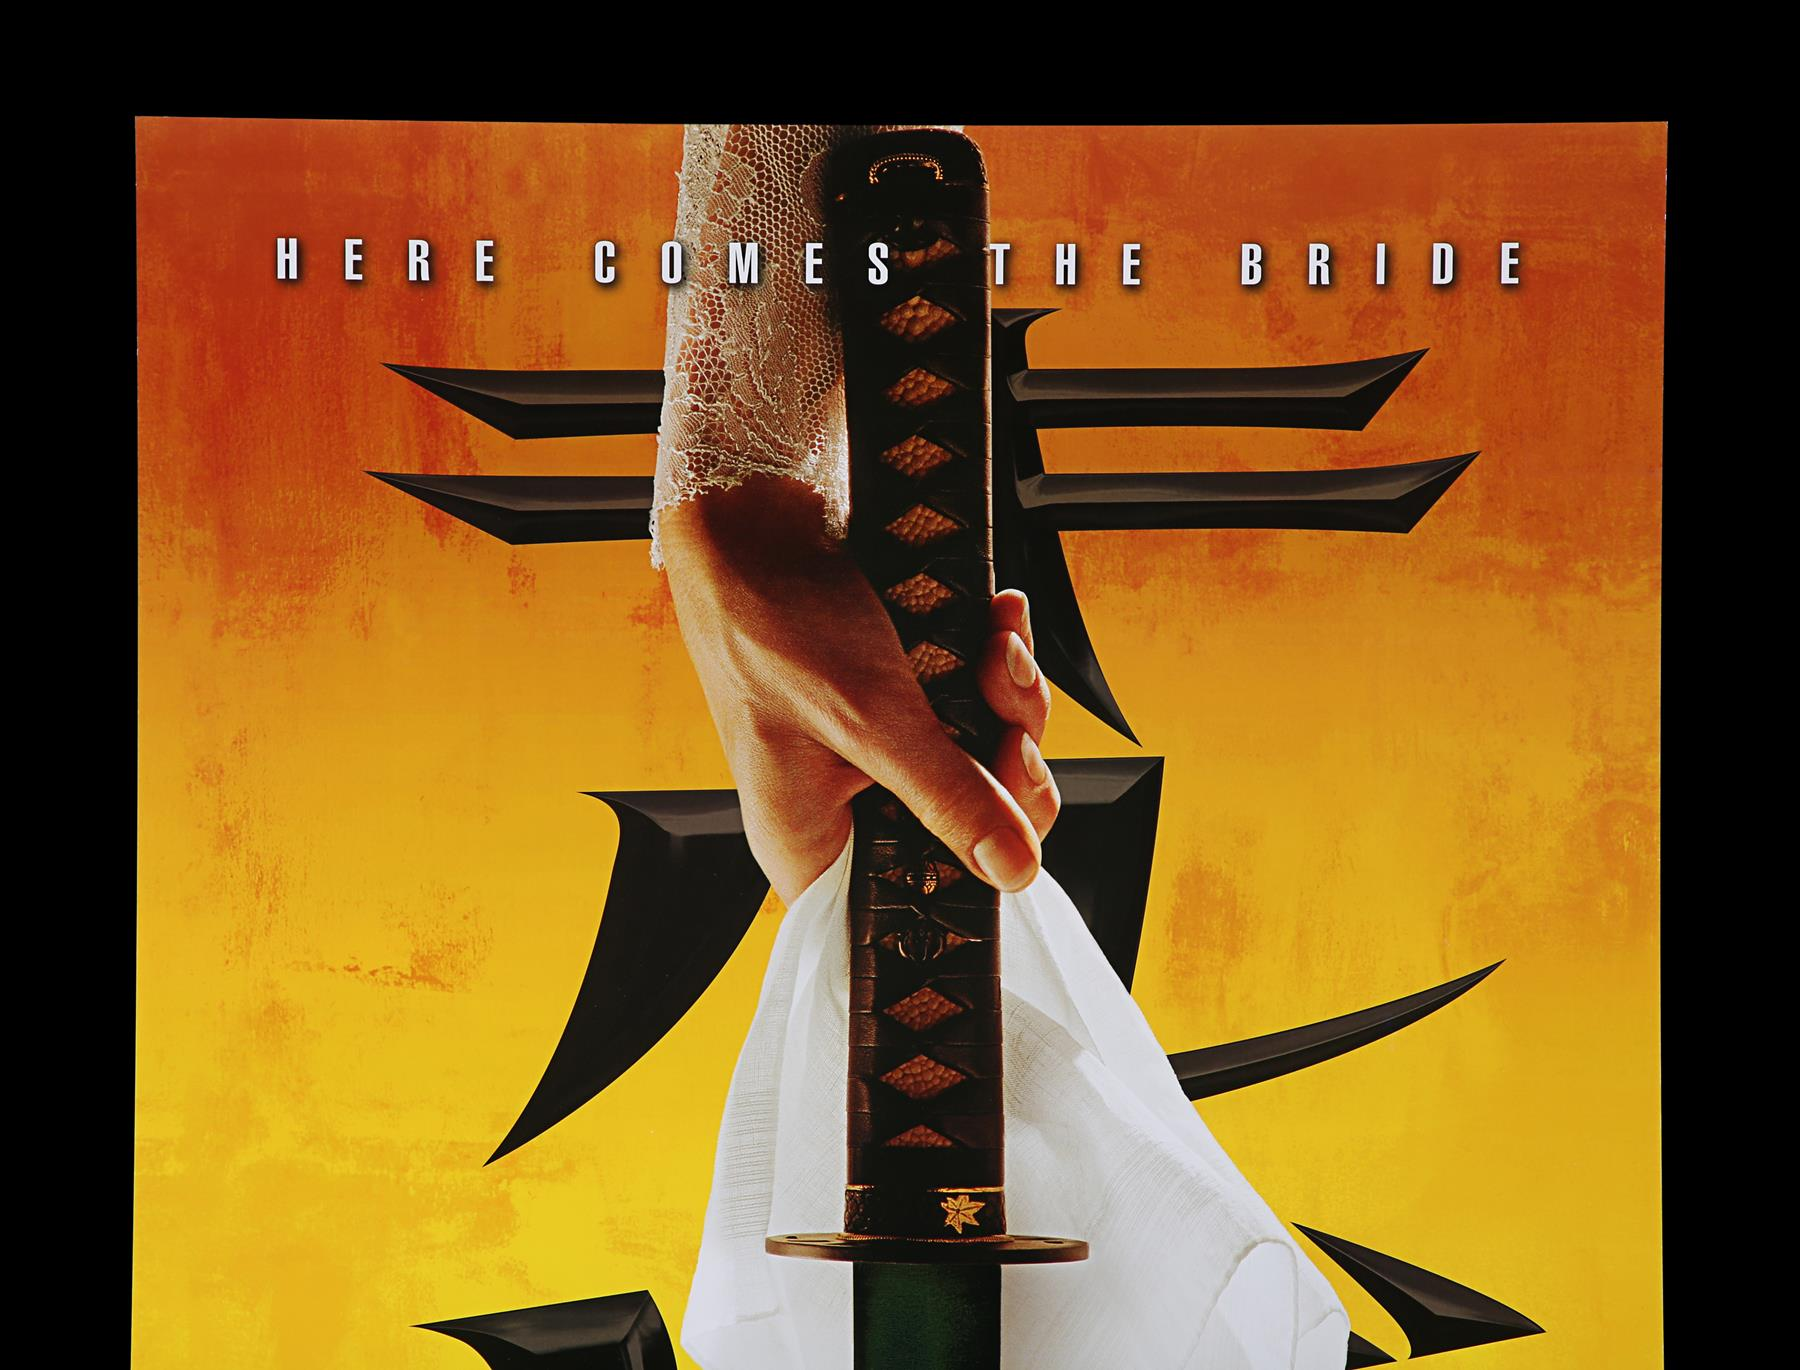 KILL BILL (2003) - US One-Sheet and Thai One-Sheet, 2003 - Image 8 of 10